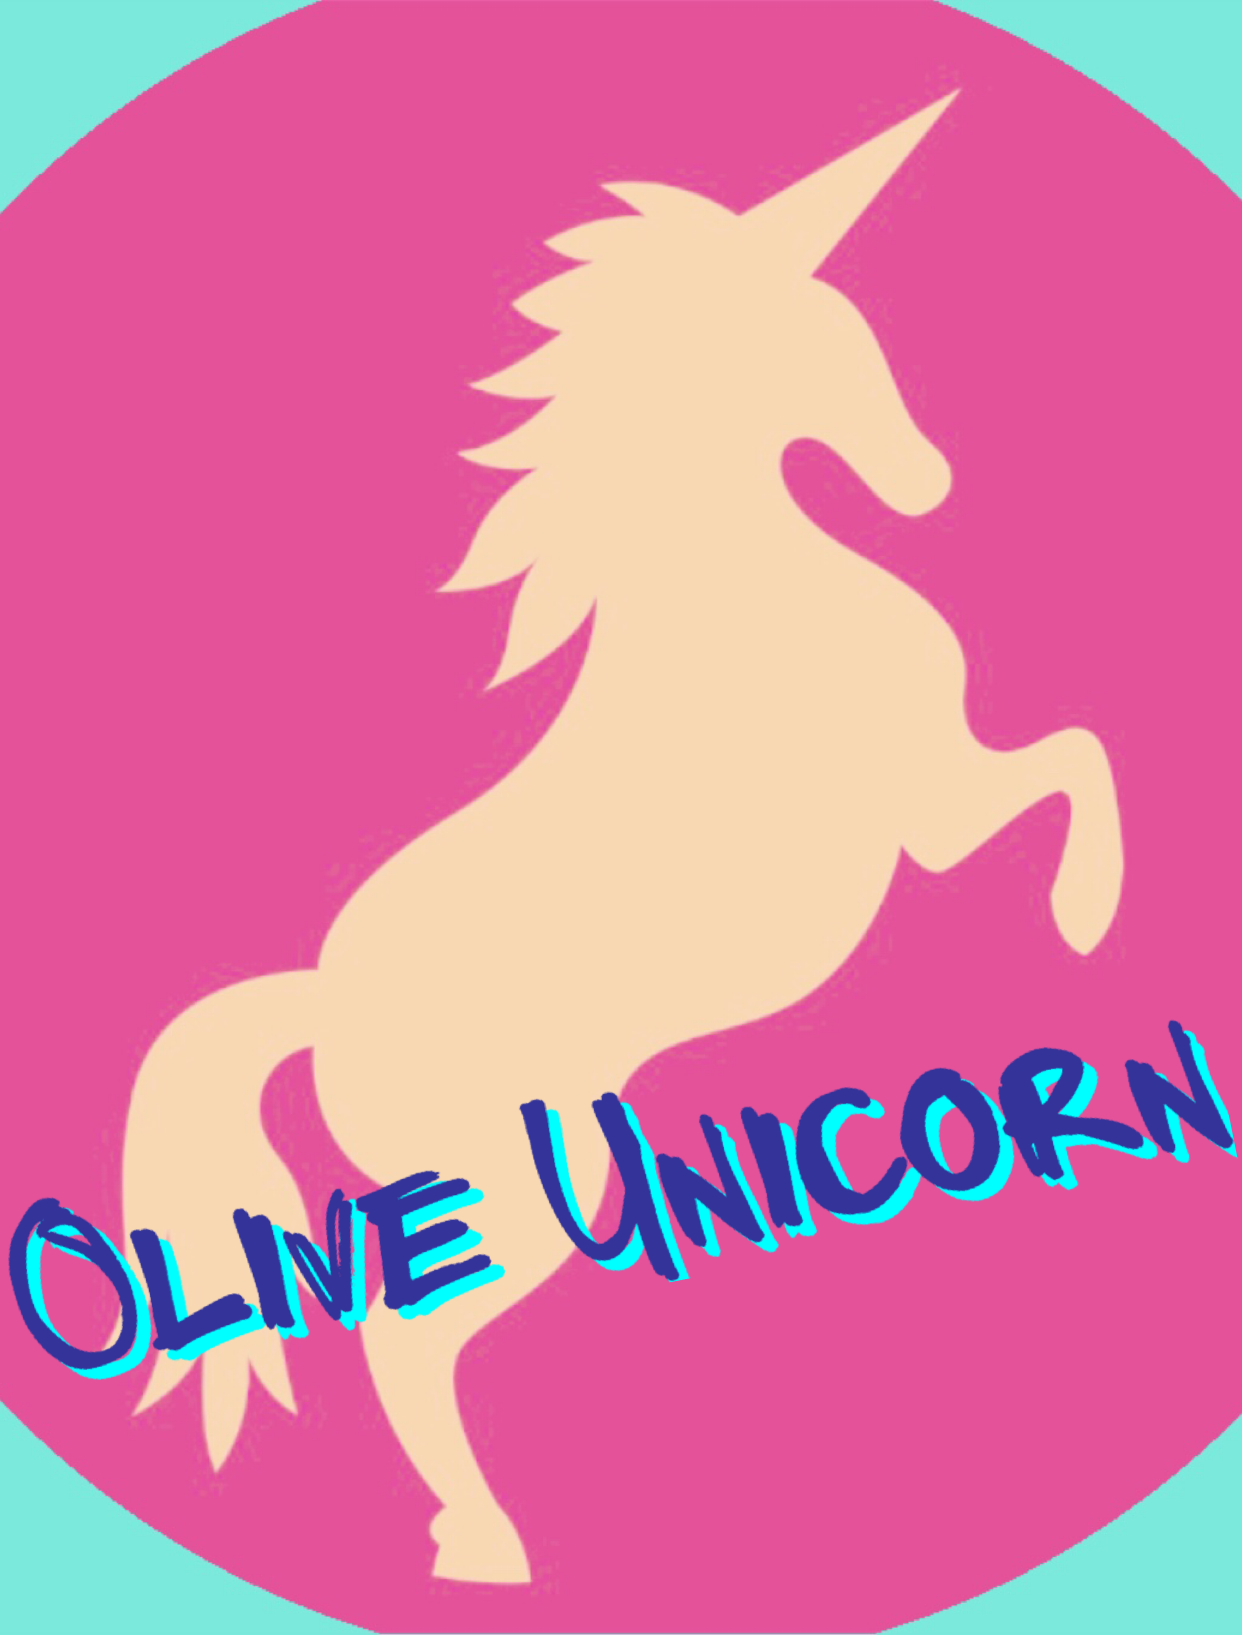 The Olive Unicorn Beauty Review